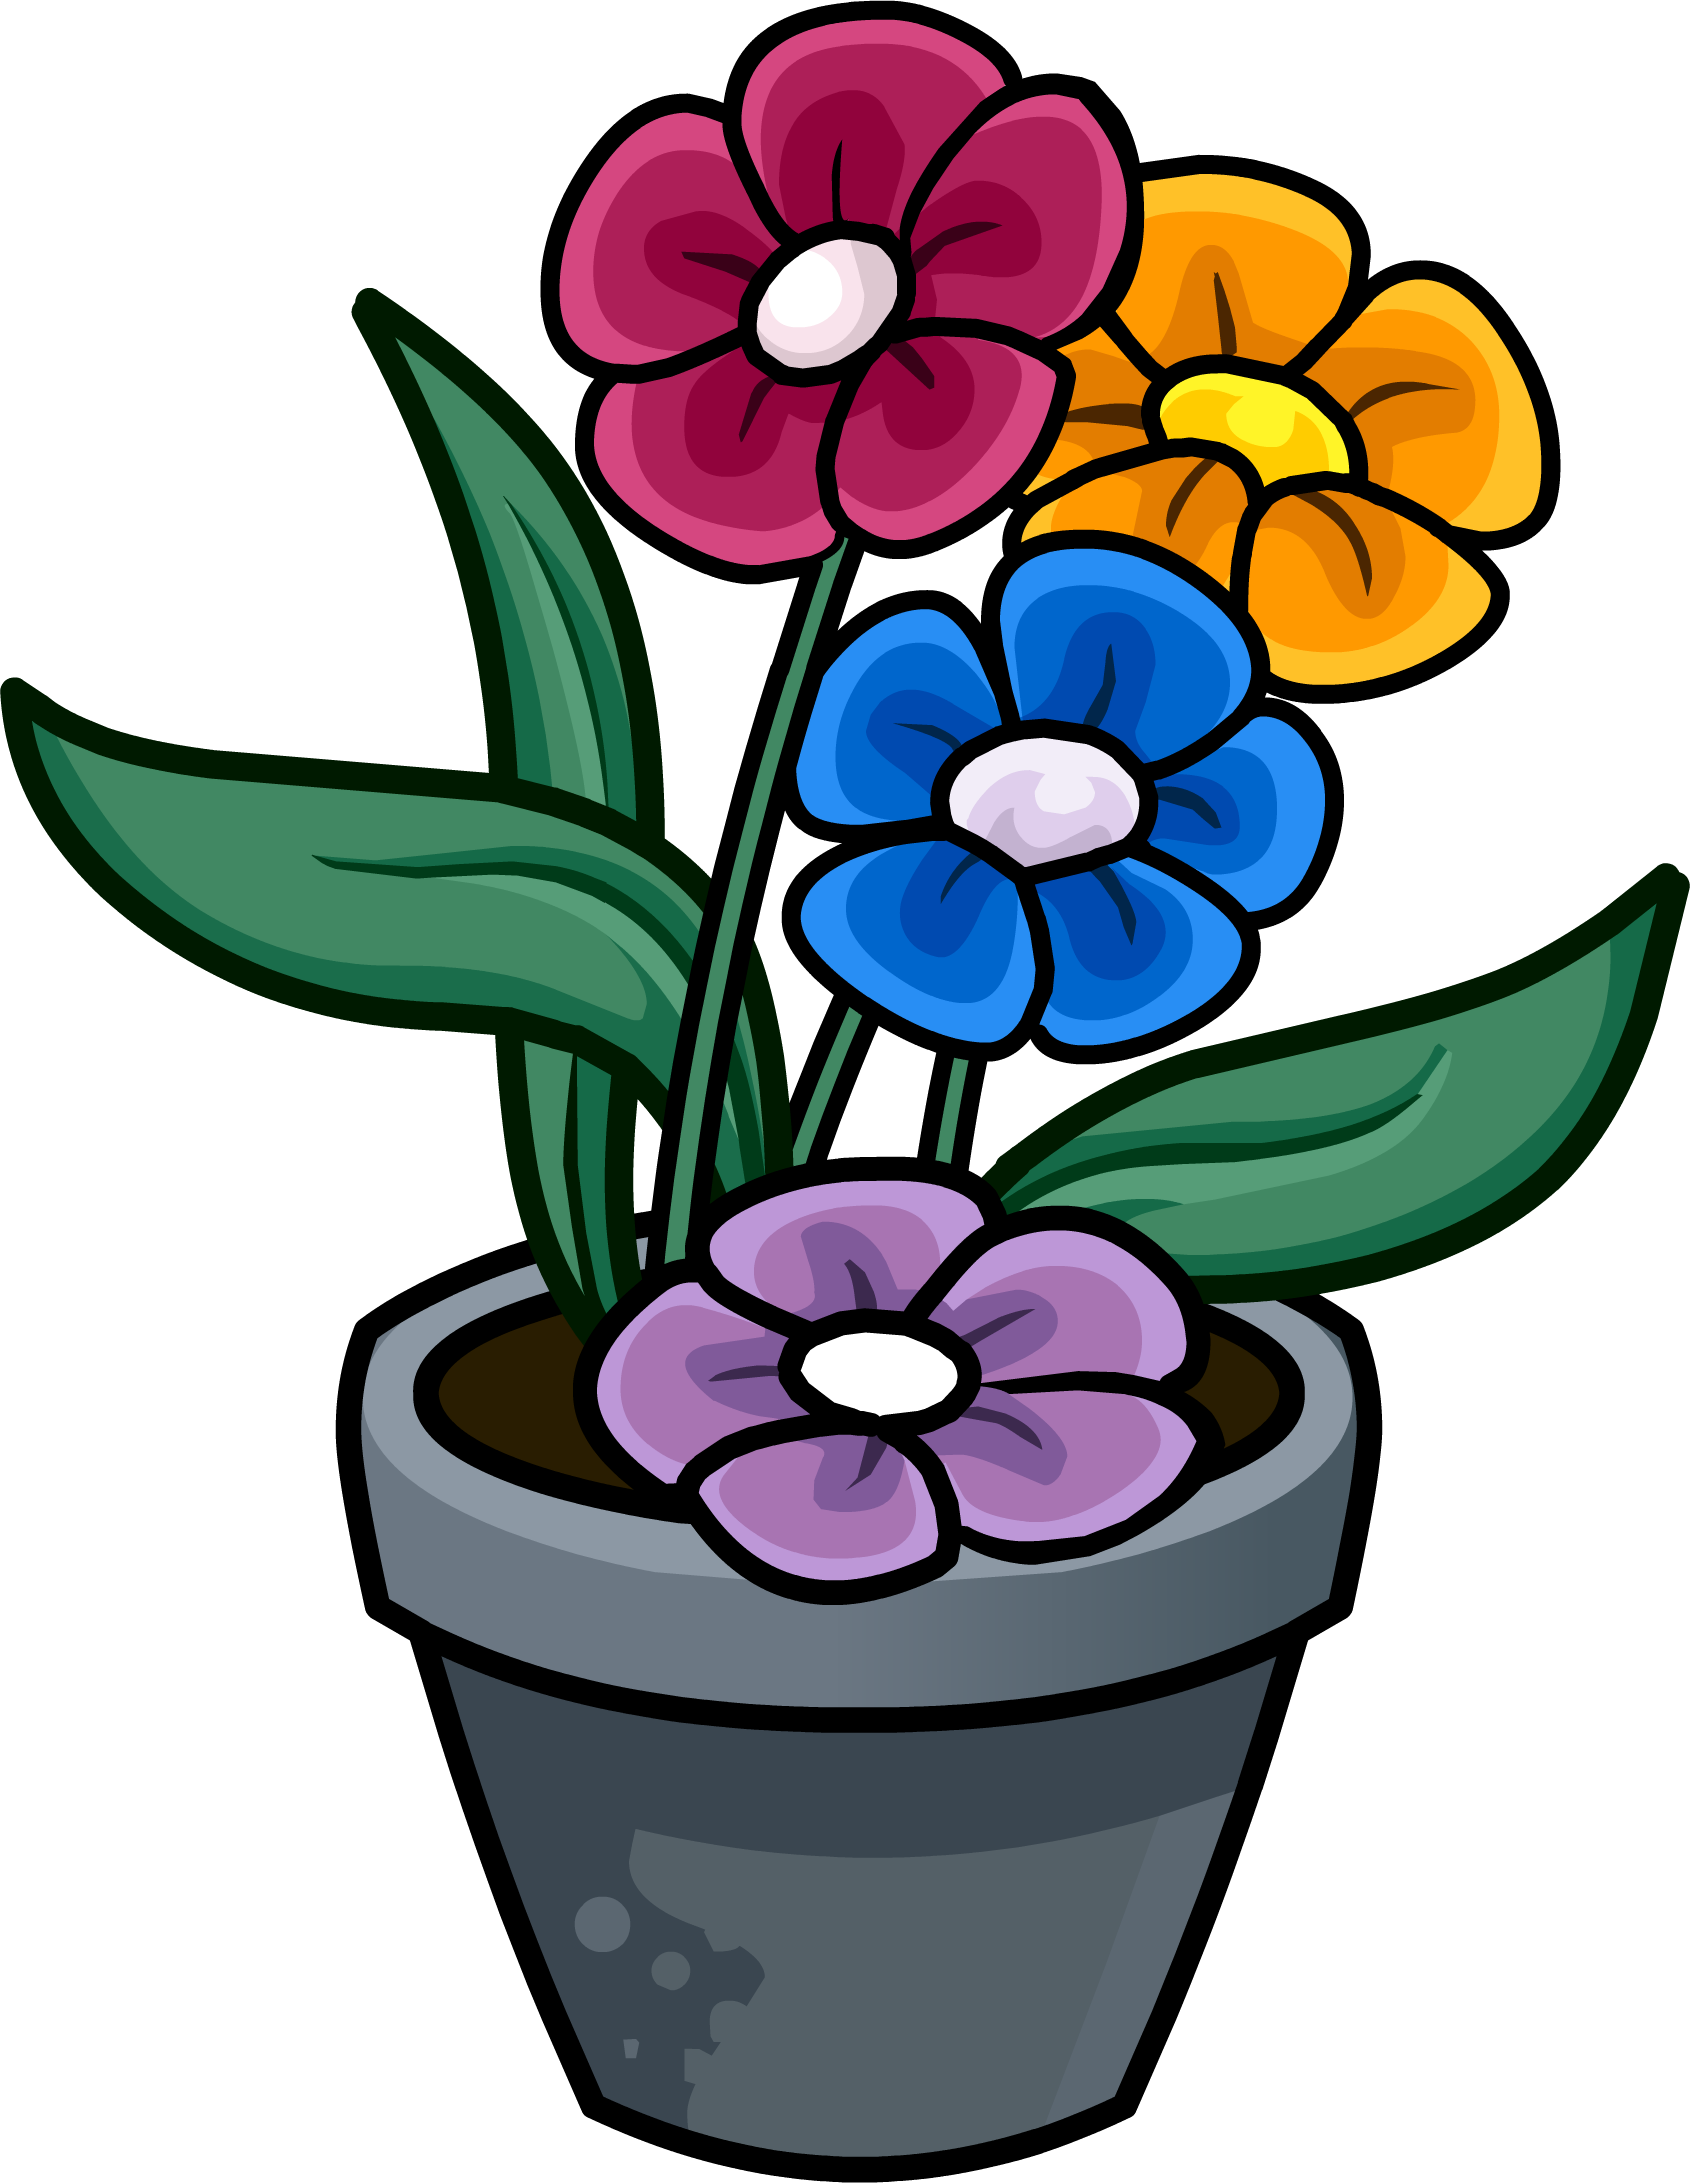 clipart flower in pot - photo #21